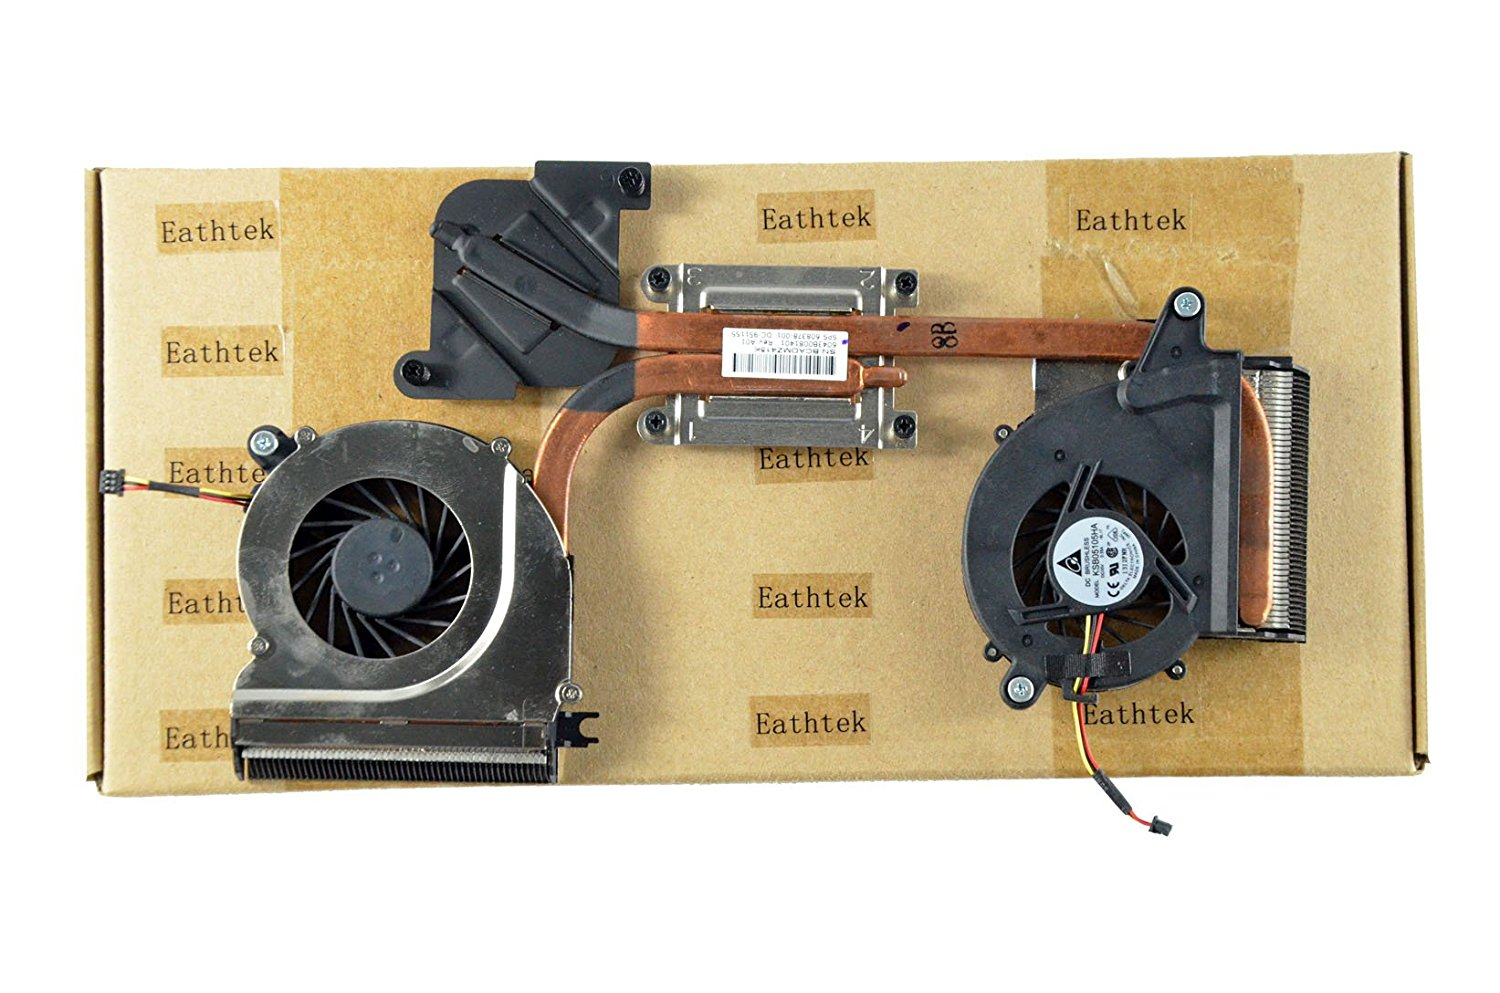 Eathtek Replacement CPU Cooling Cooler Fan with Heatsink for HP Envy 14 14T series, Compatible with part number 608378-001 KSB05105HA